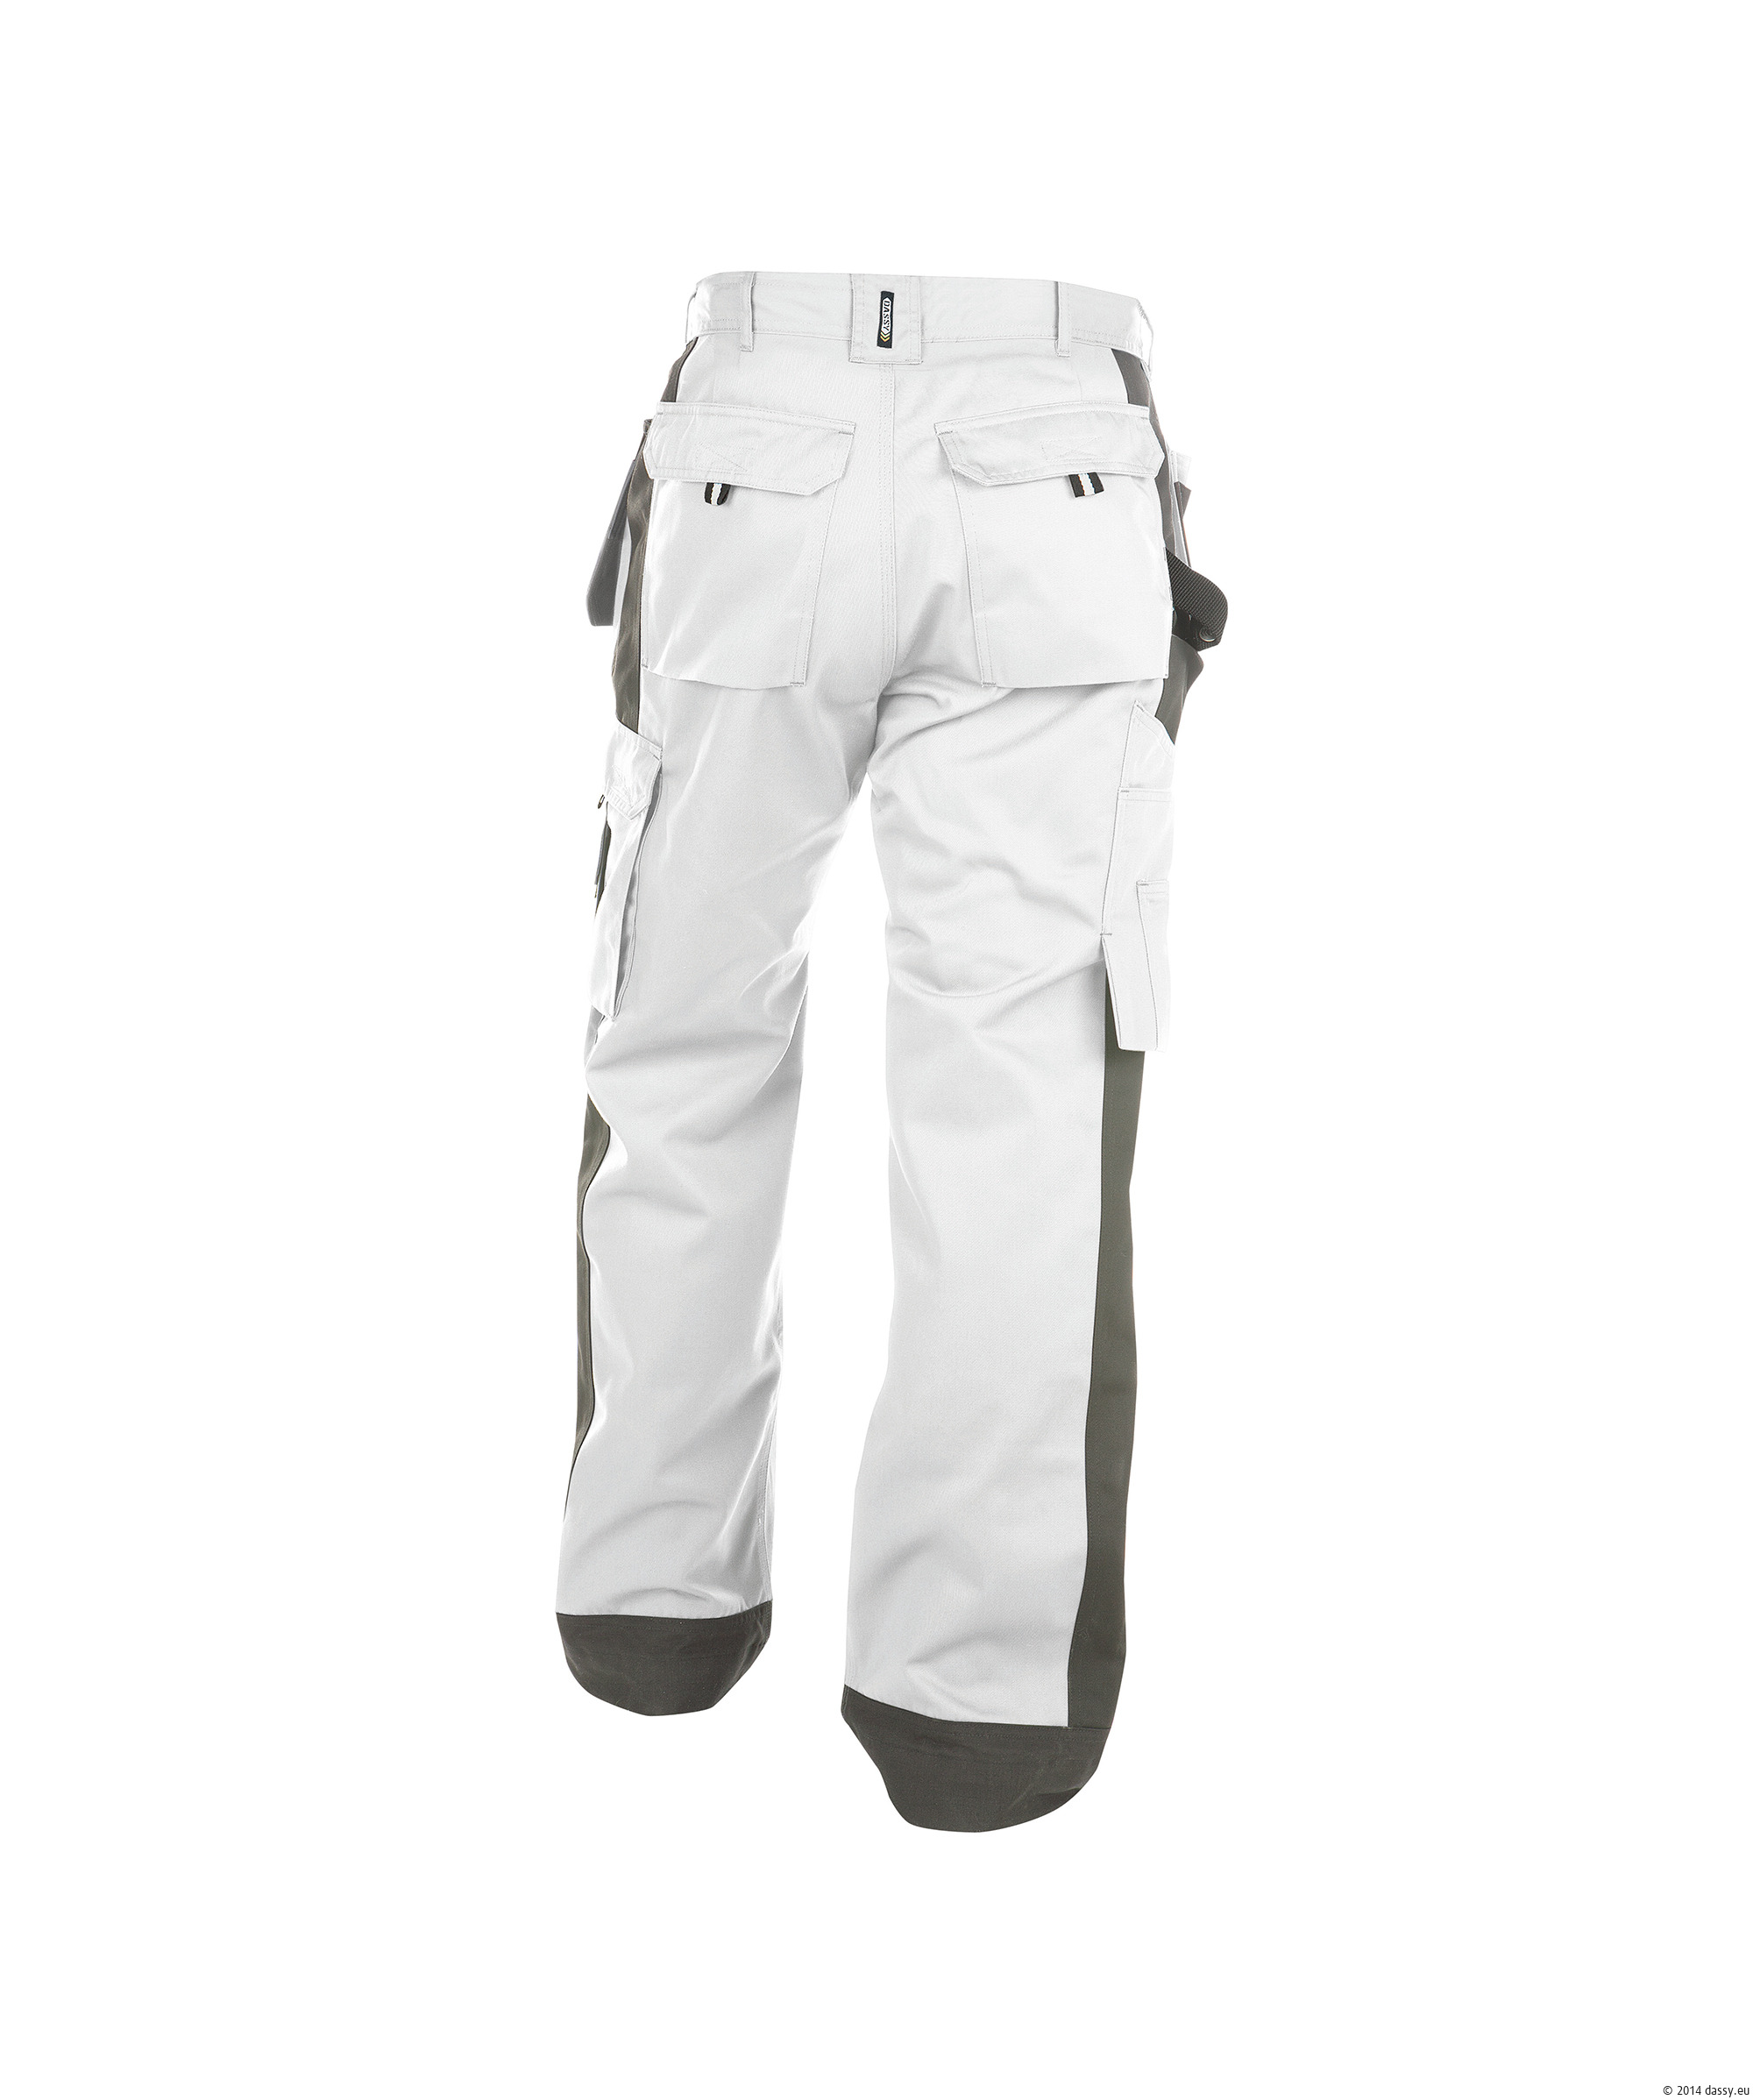 The Dickies Original Work Pants are the most popular work pants available. These pants have a Flat Front and a Permanent Crease. These pants are also Stain and Wrinkle Resistant and contain the Sc.